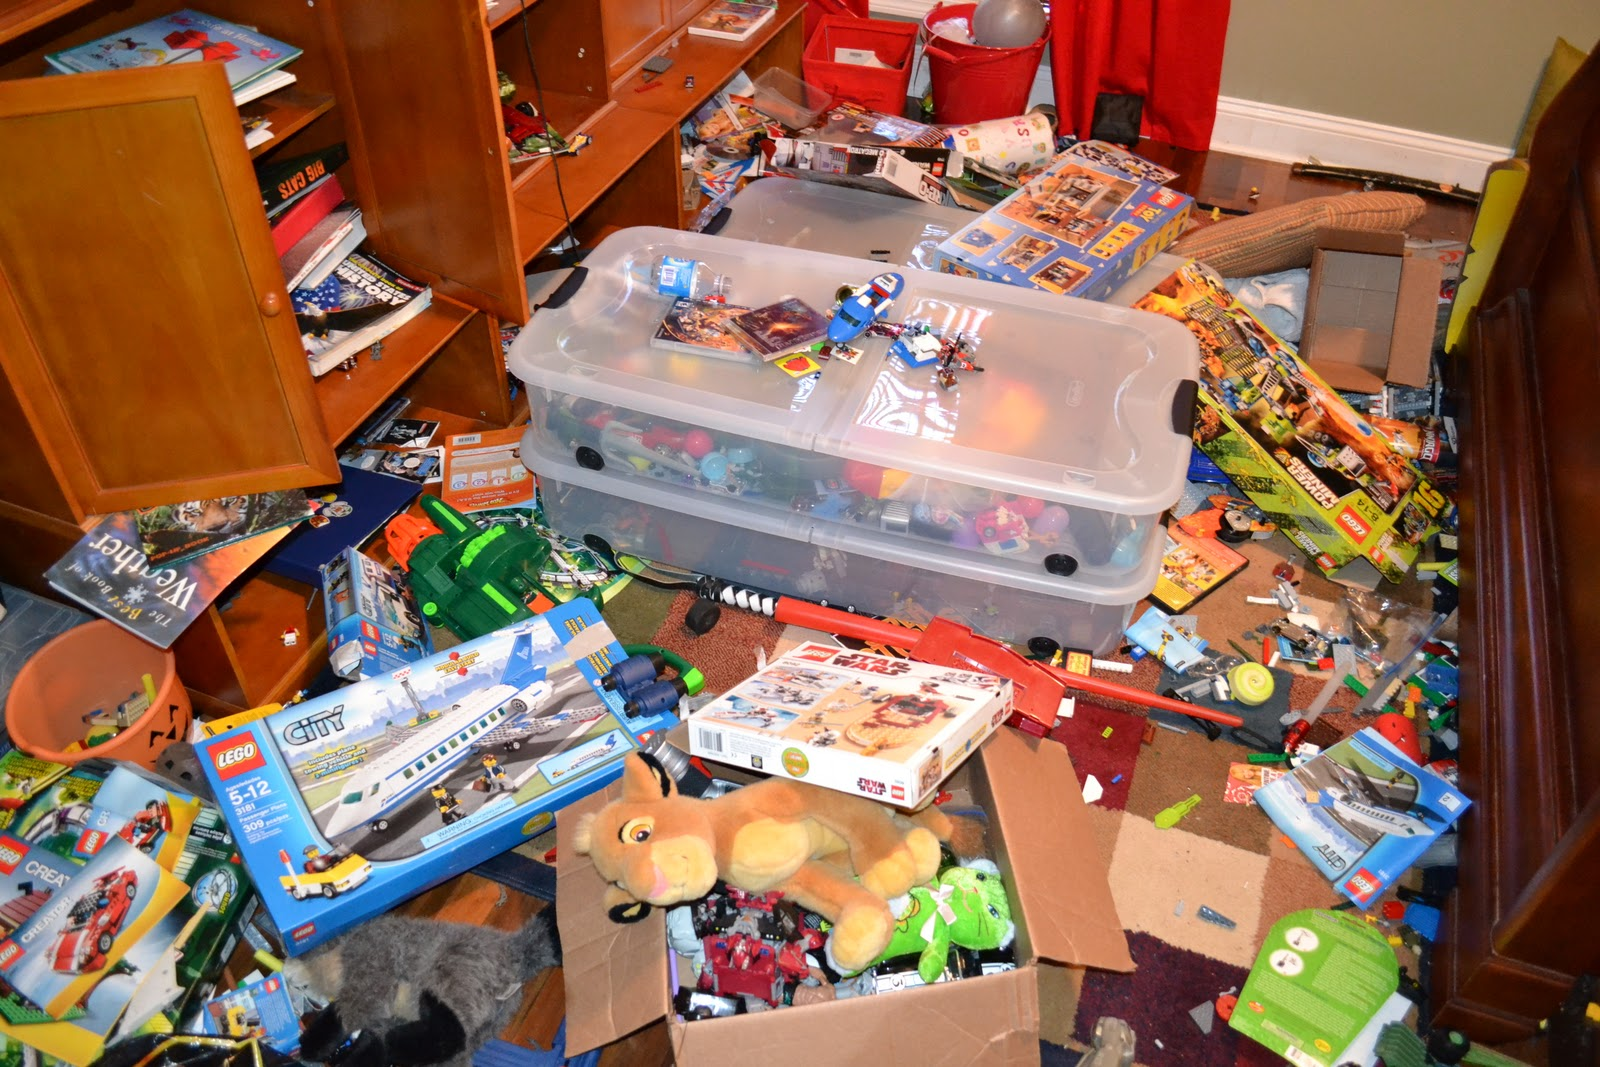 Organizing Mistakes What Not To Do When Conquering Your Clutter Tidy Up